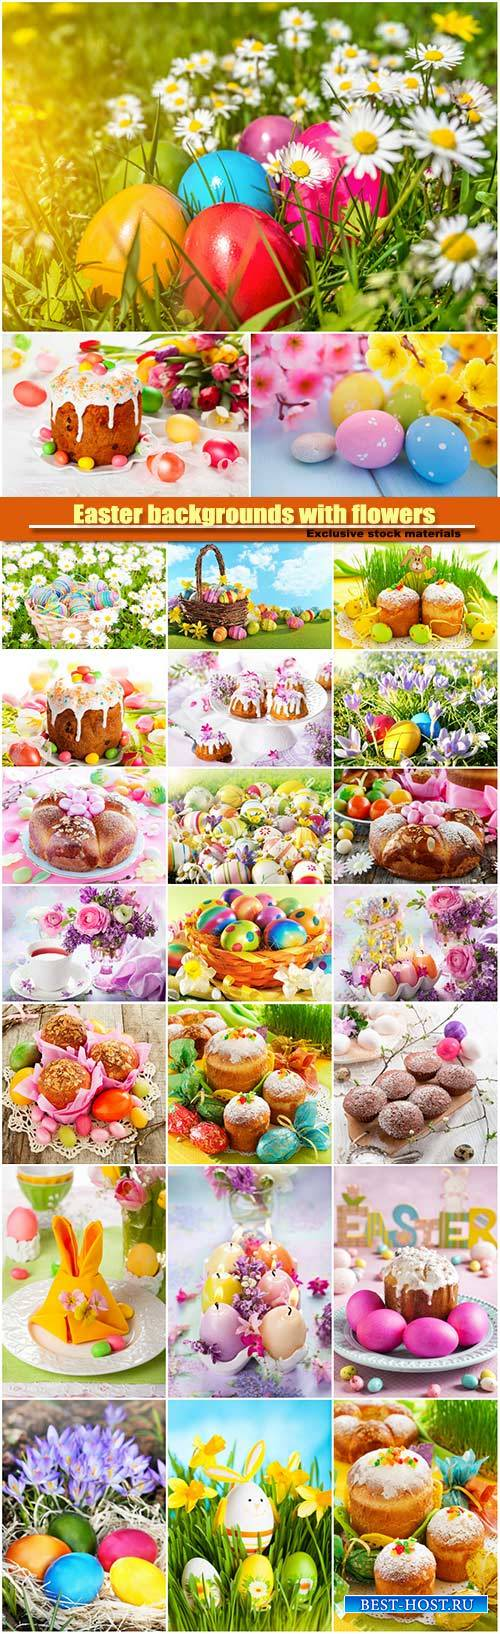 Easter backgrounds with flowers and easter eggs